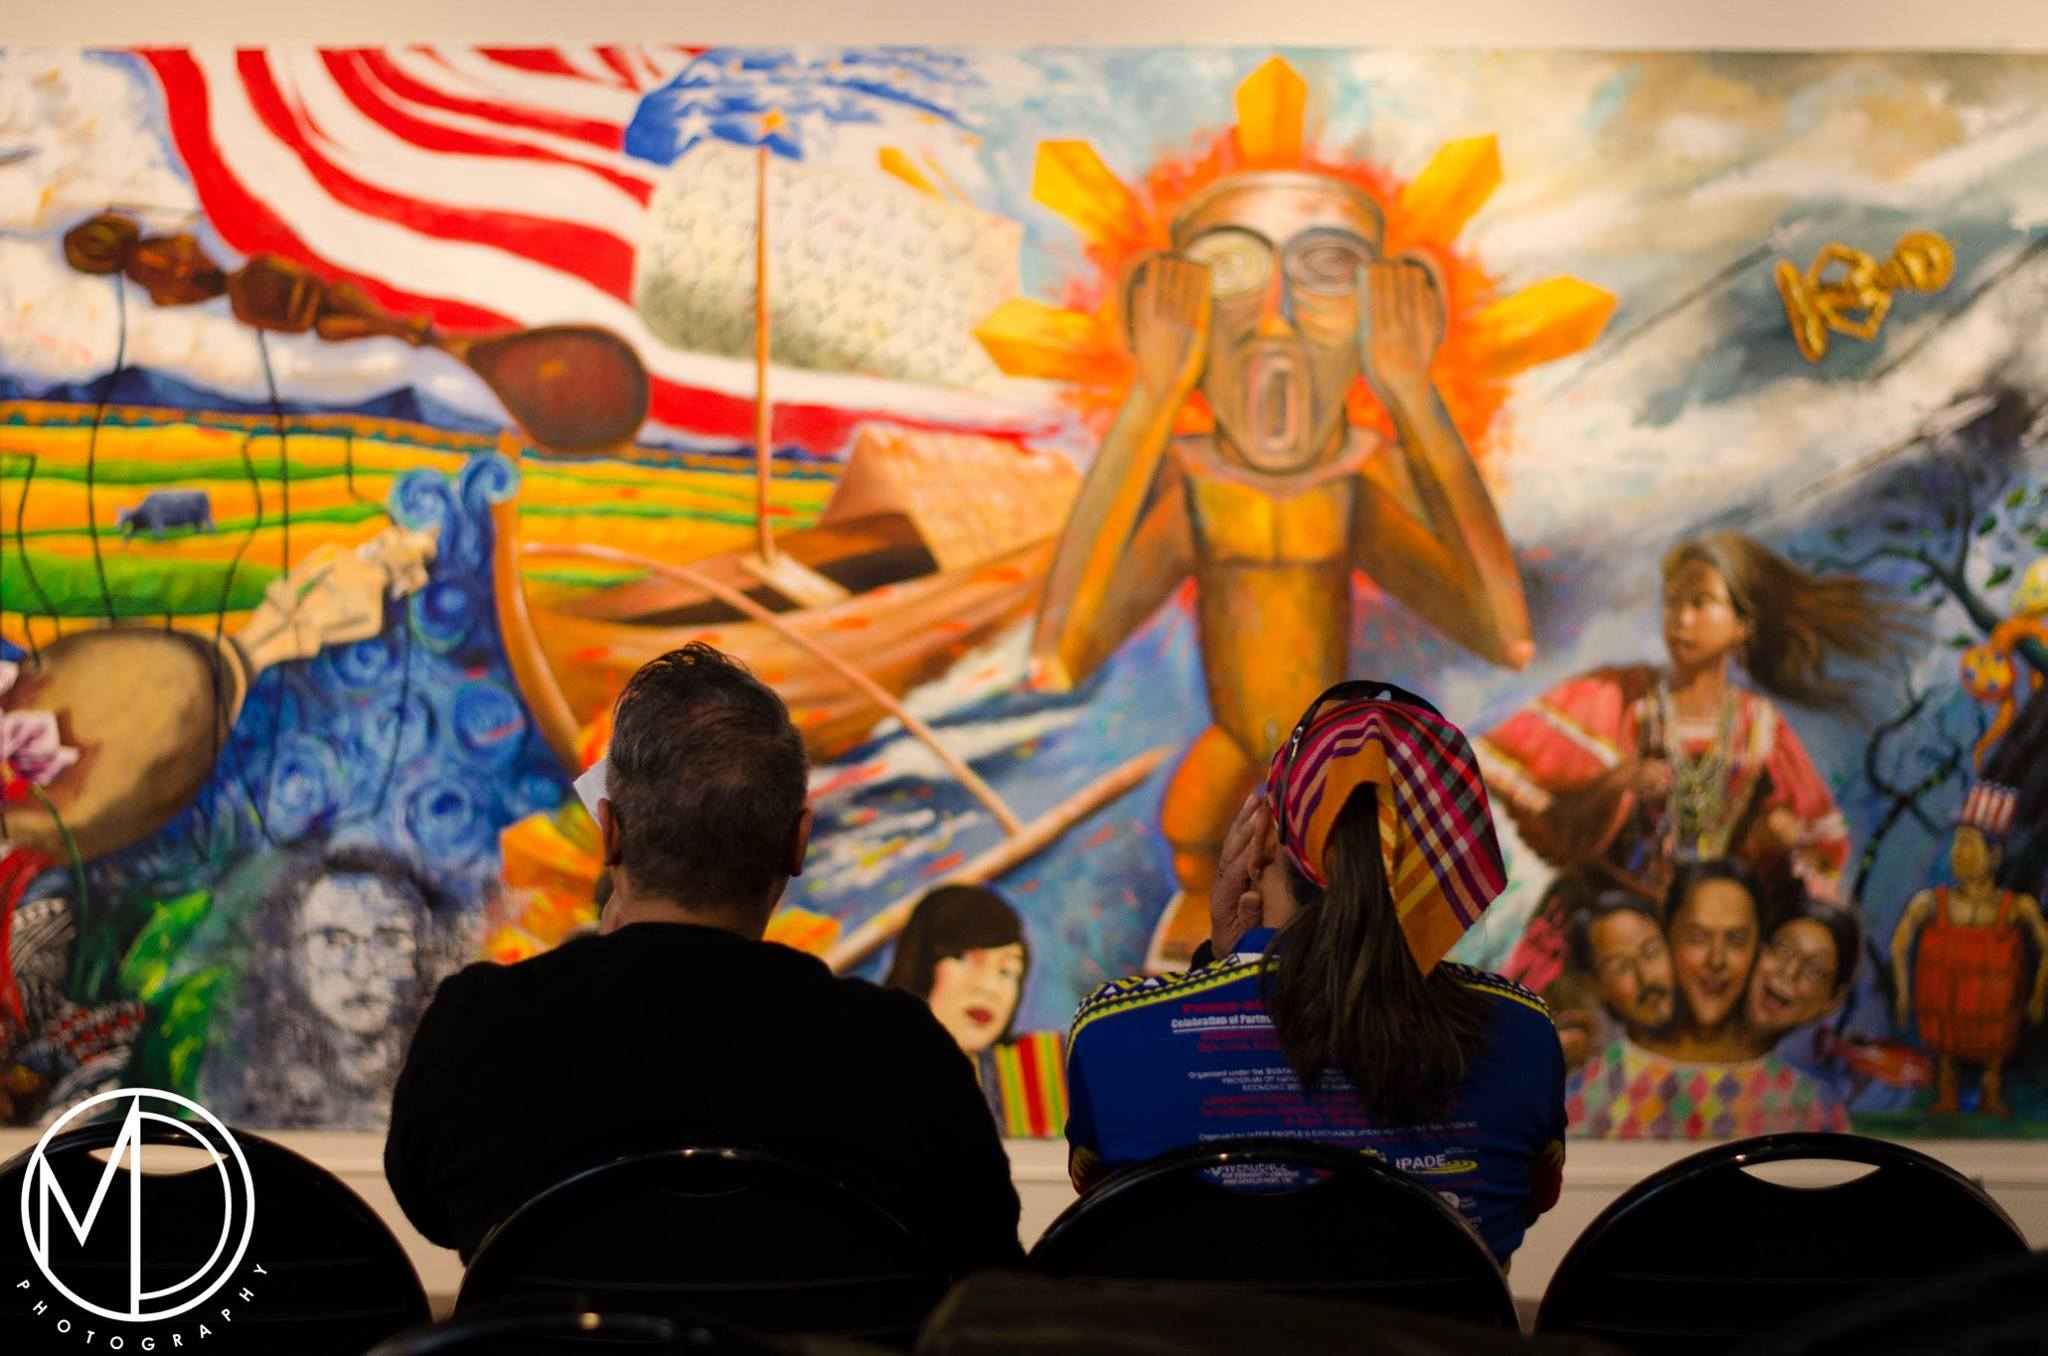 Guests Cesar Conde and Levi Aliposa viewing the Art and Anthropology collaborative mural.